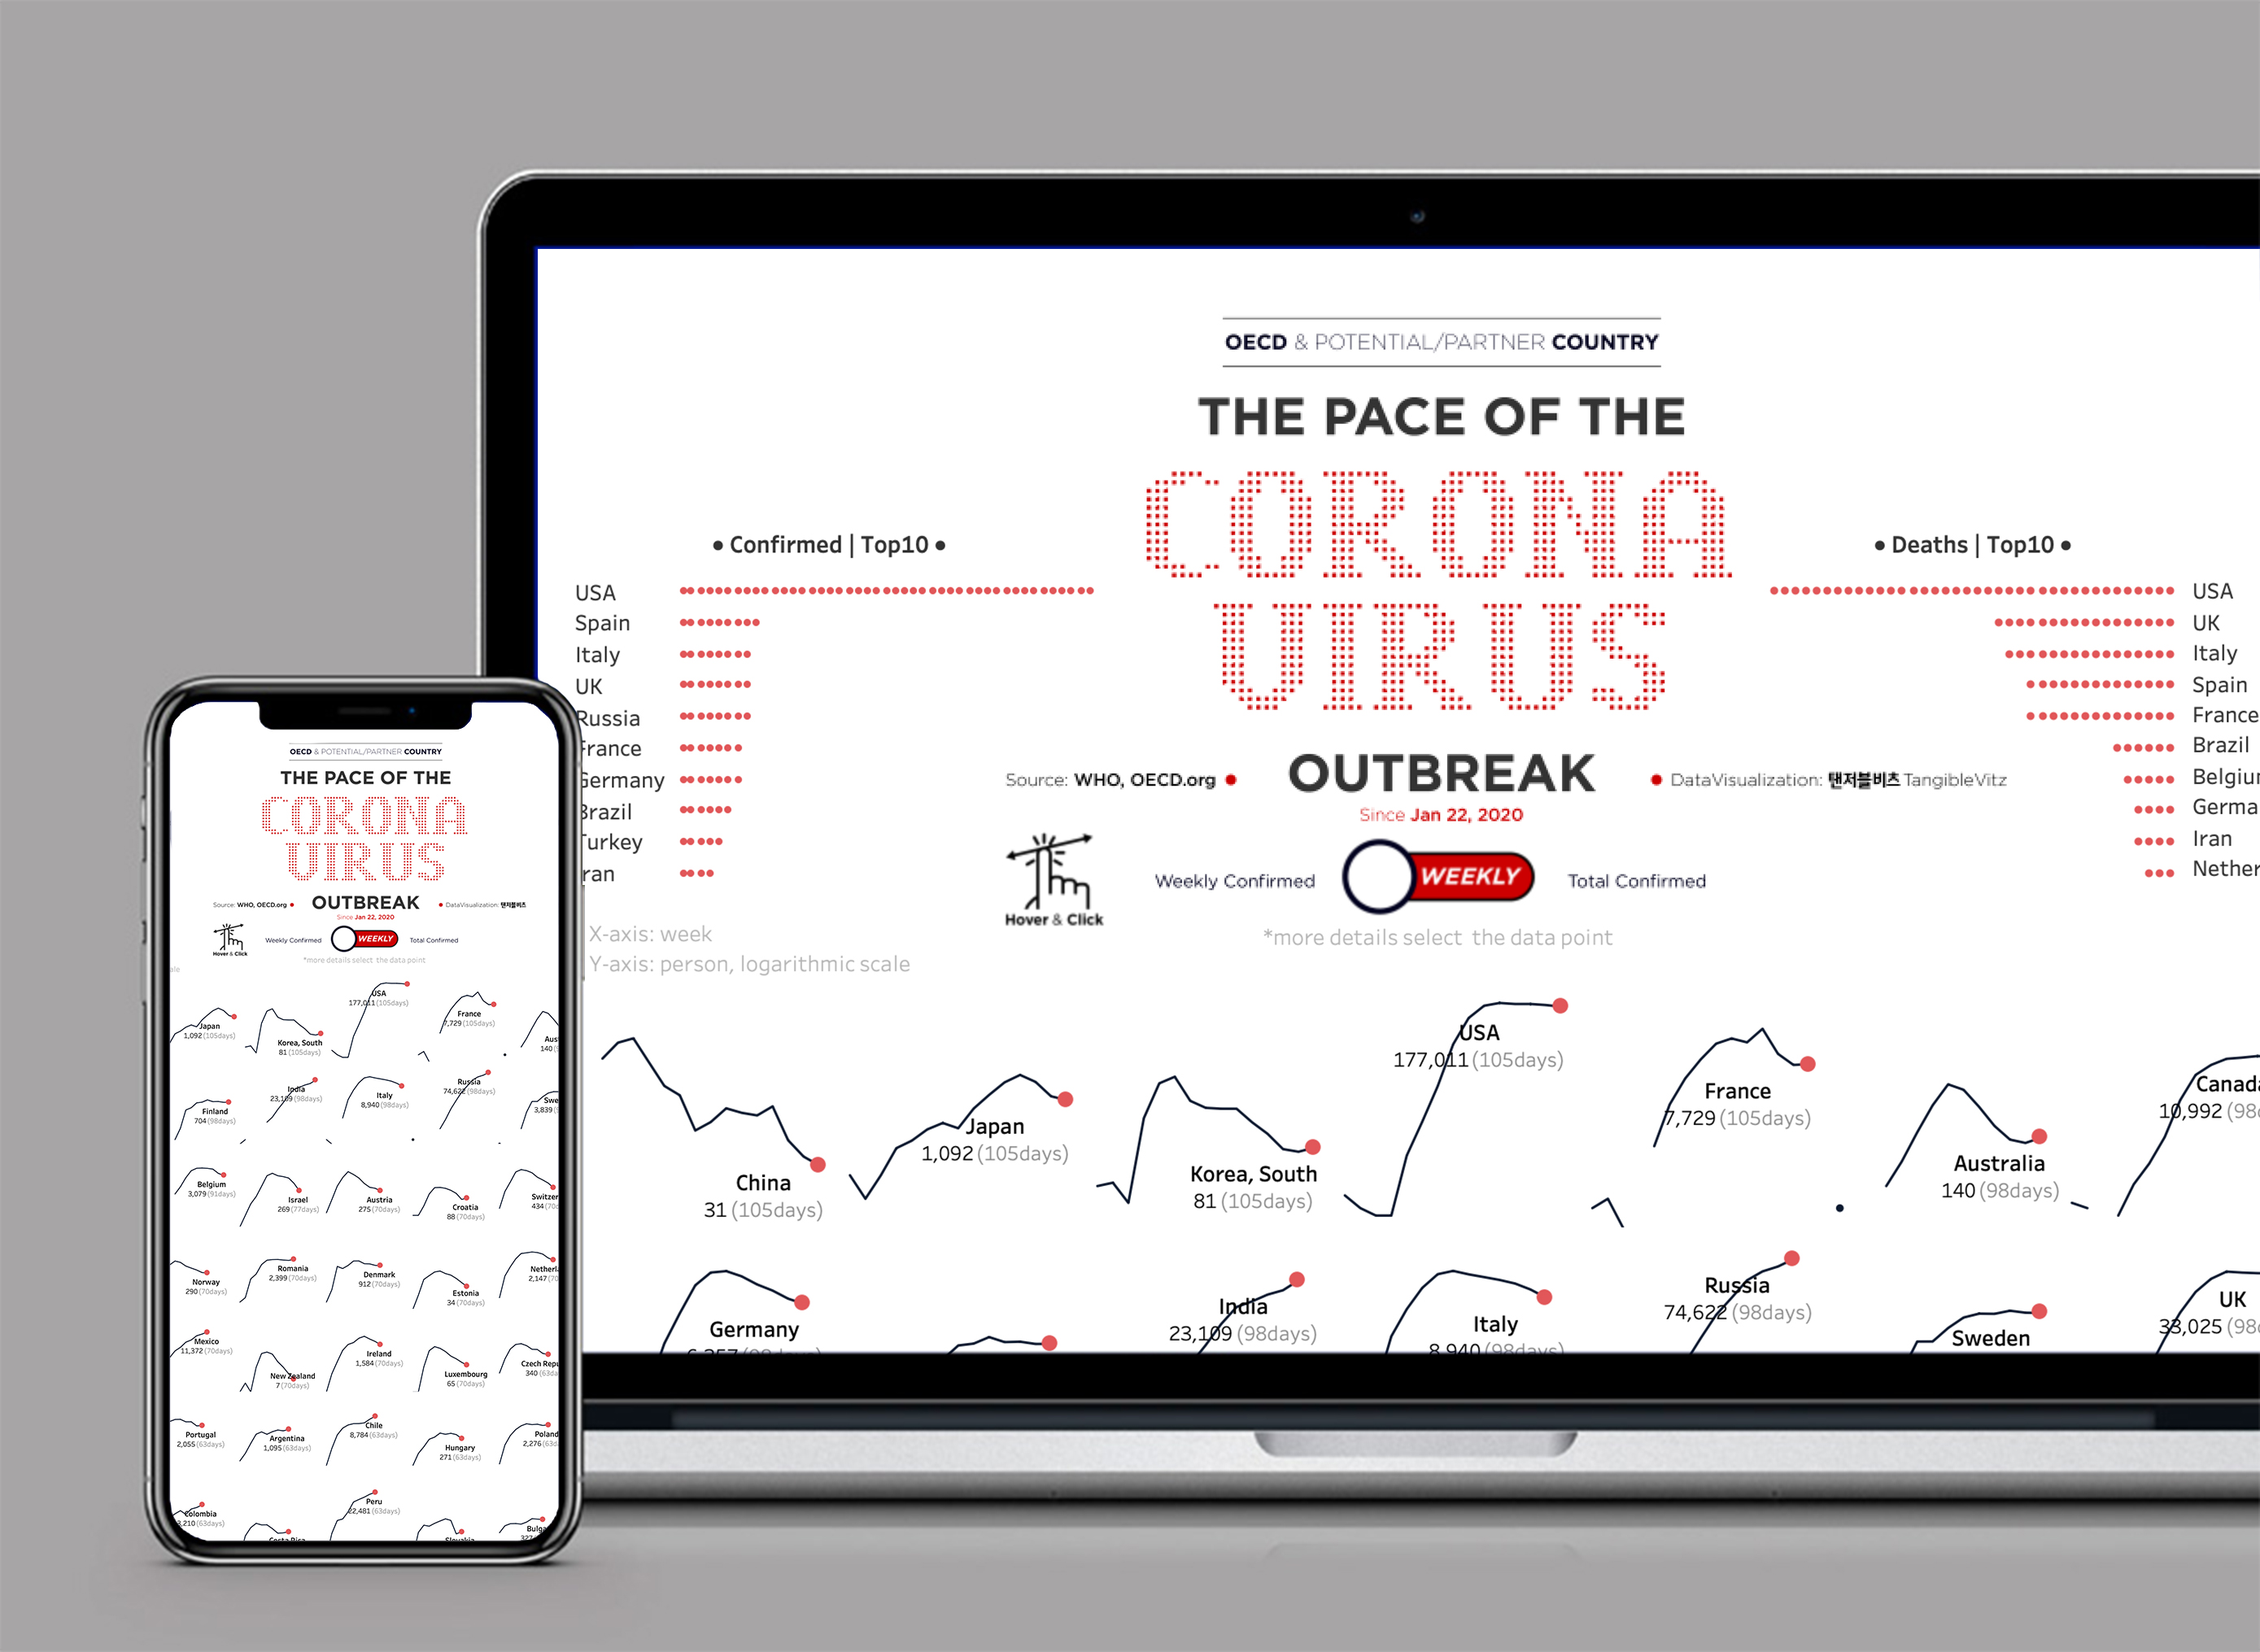 The Pace of the COVID19 Outbreak